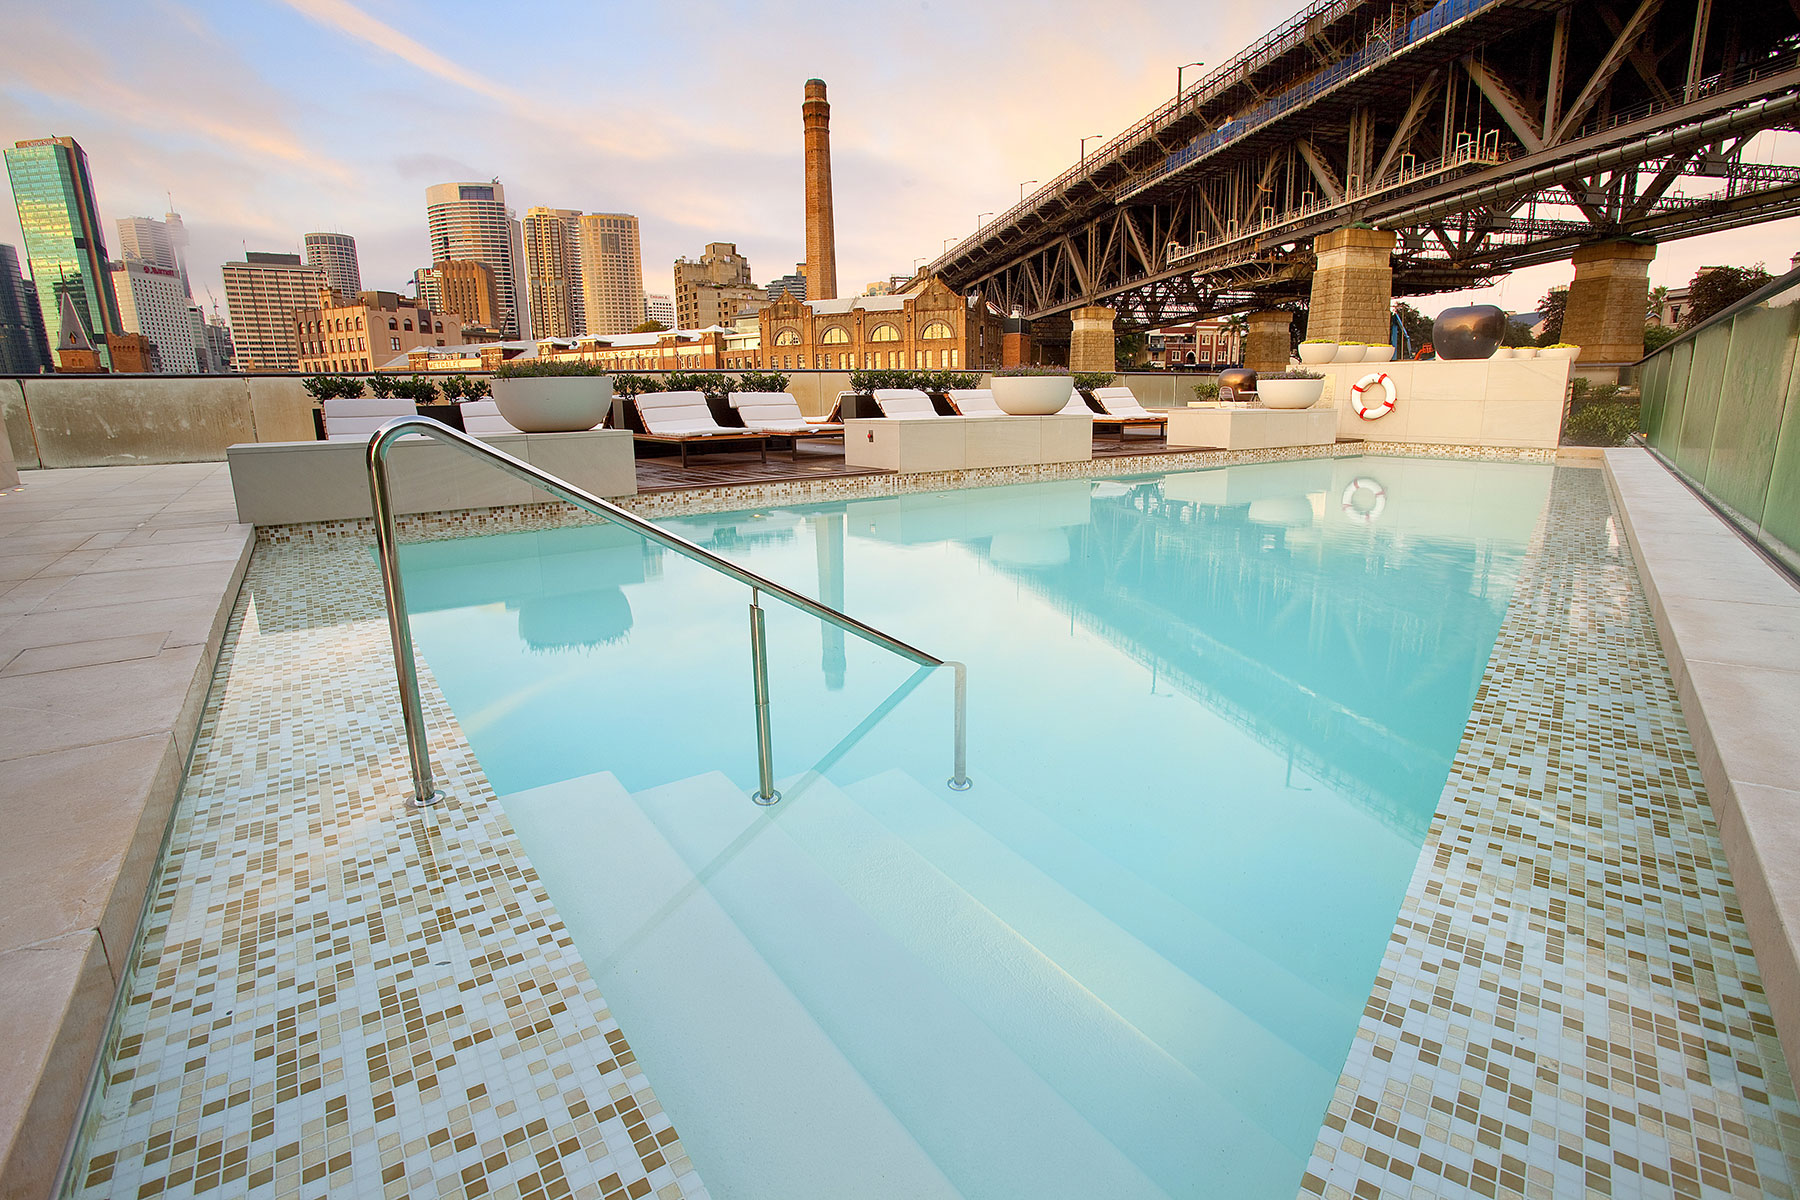 Commercial-Pool-Project-Park-Hyatt-5